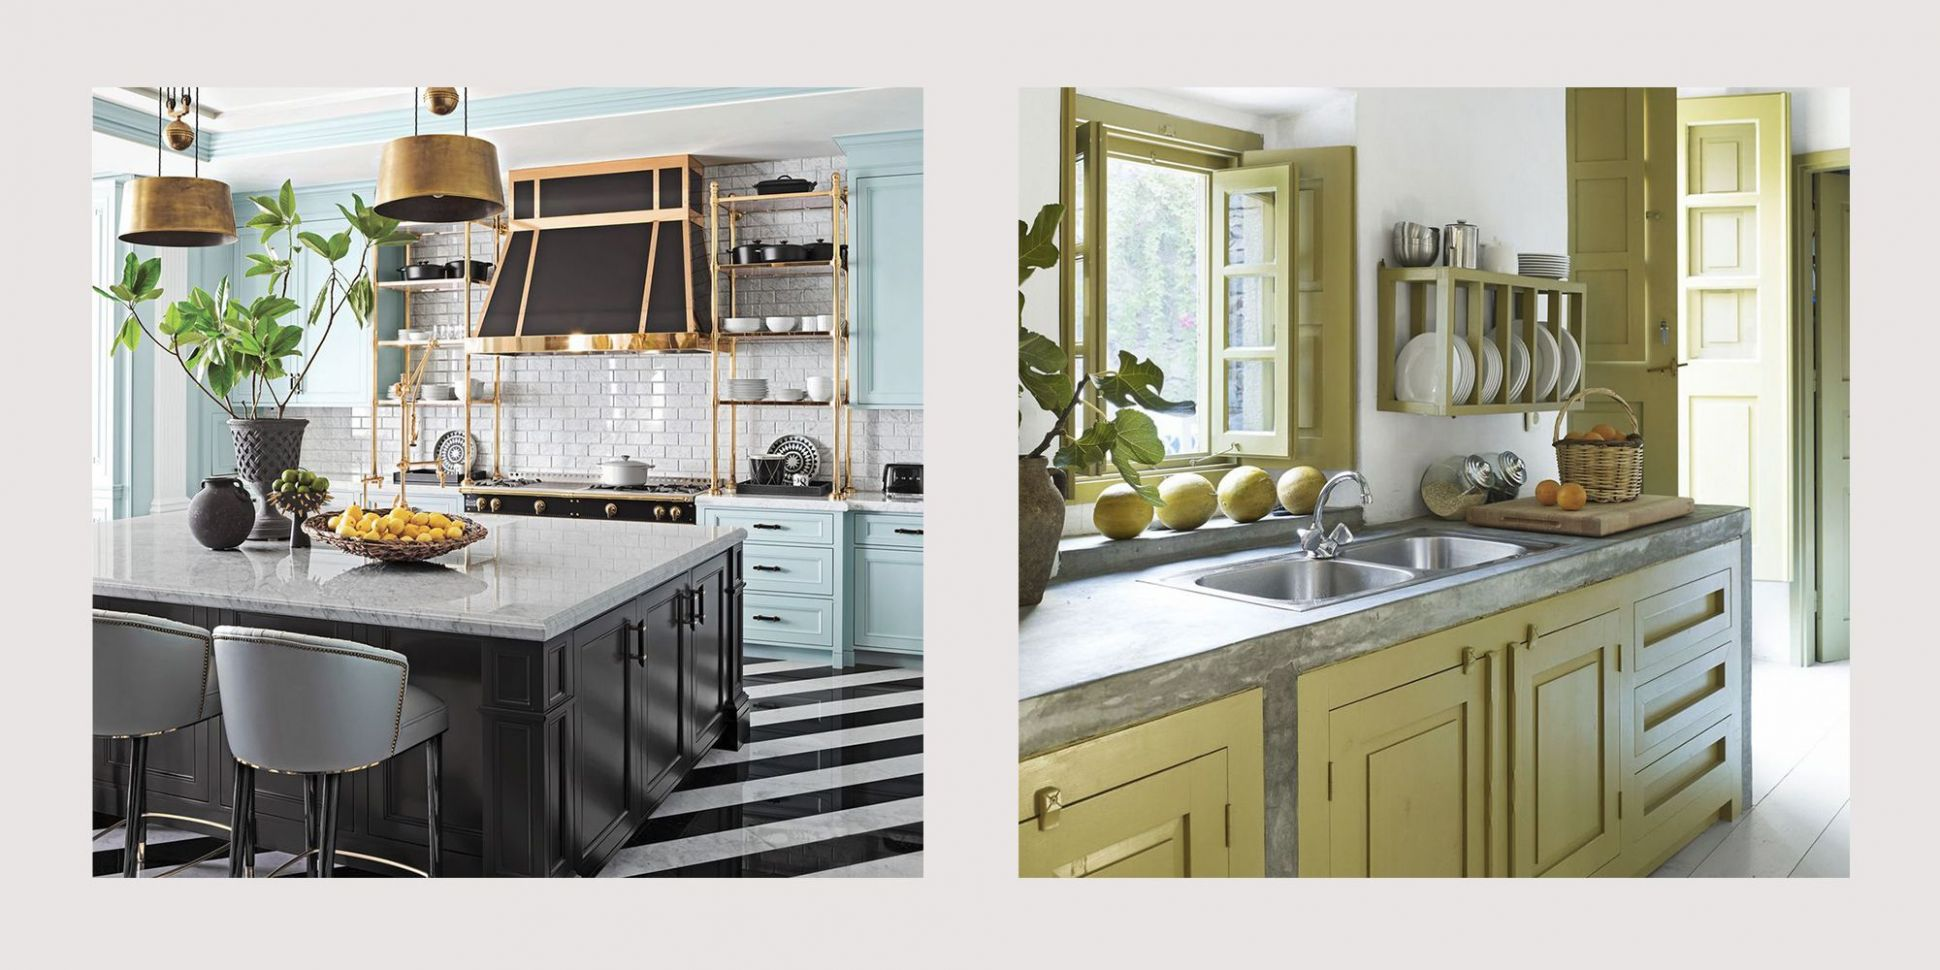 12 Best Painted Kitchen Cabinets - Ideas for Transforming Your ..